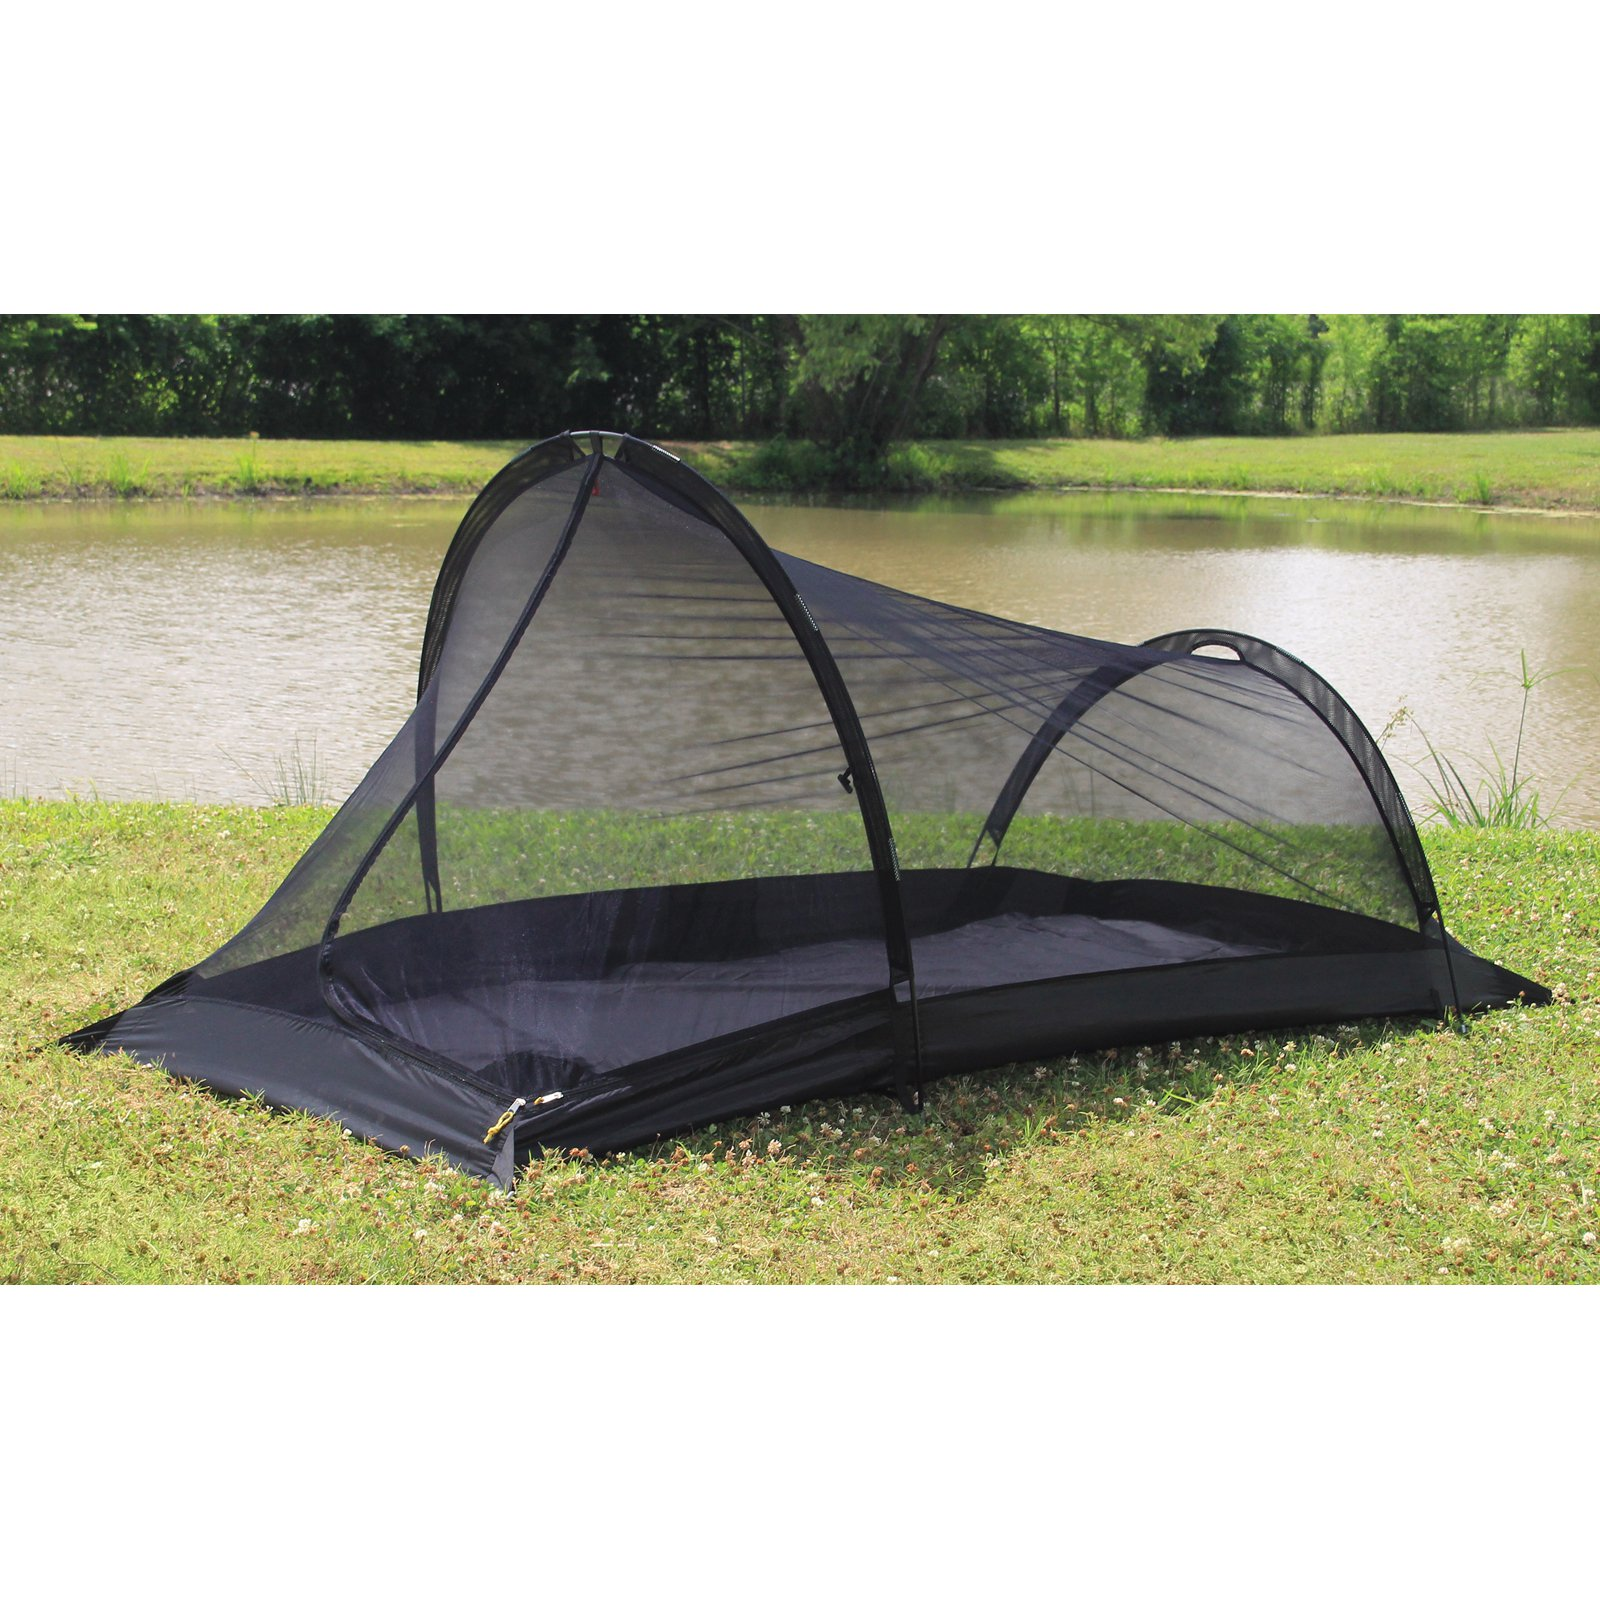 sc 1 st  Walmart & First Gear Cliff Hanger II Three Season Backpacking Tent - Walmart.com